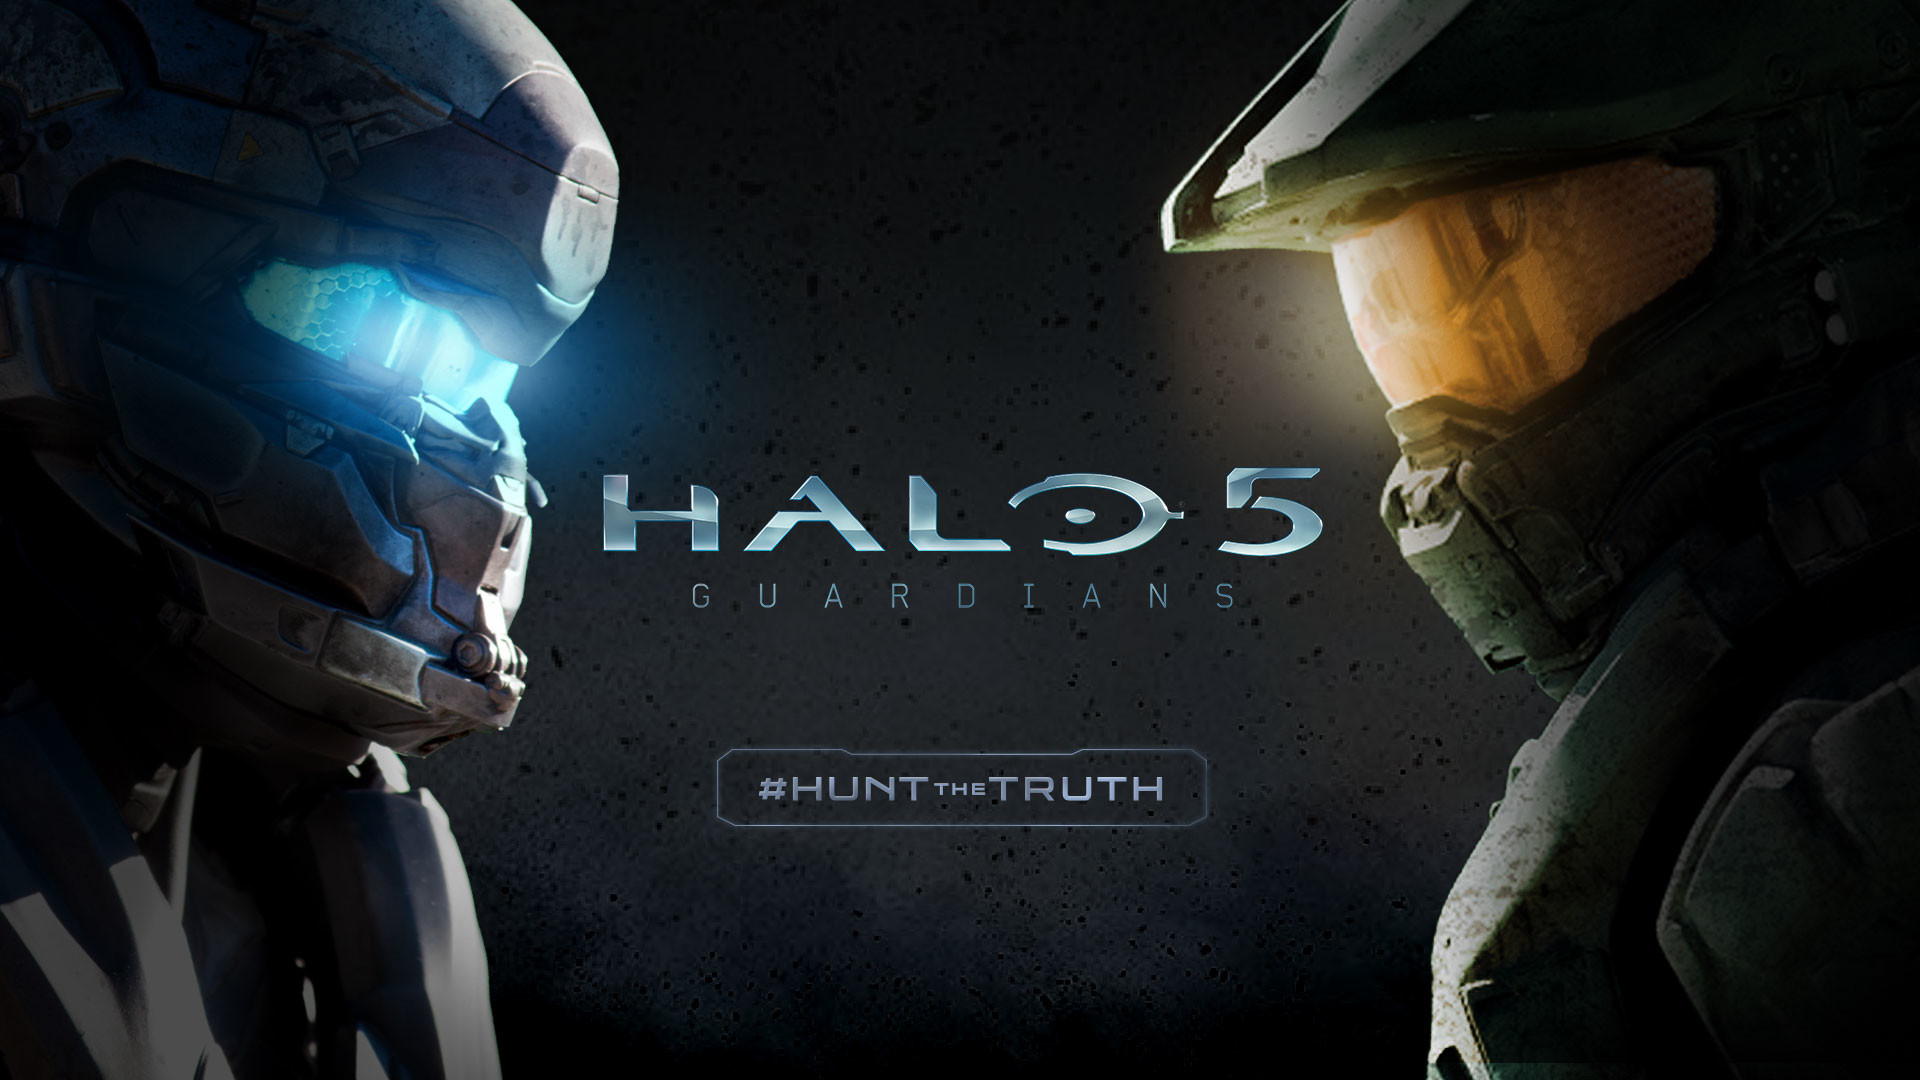 1920x1080 Halo 5: Guardians #HUNTtheTRUTH Hi-Res Images